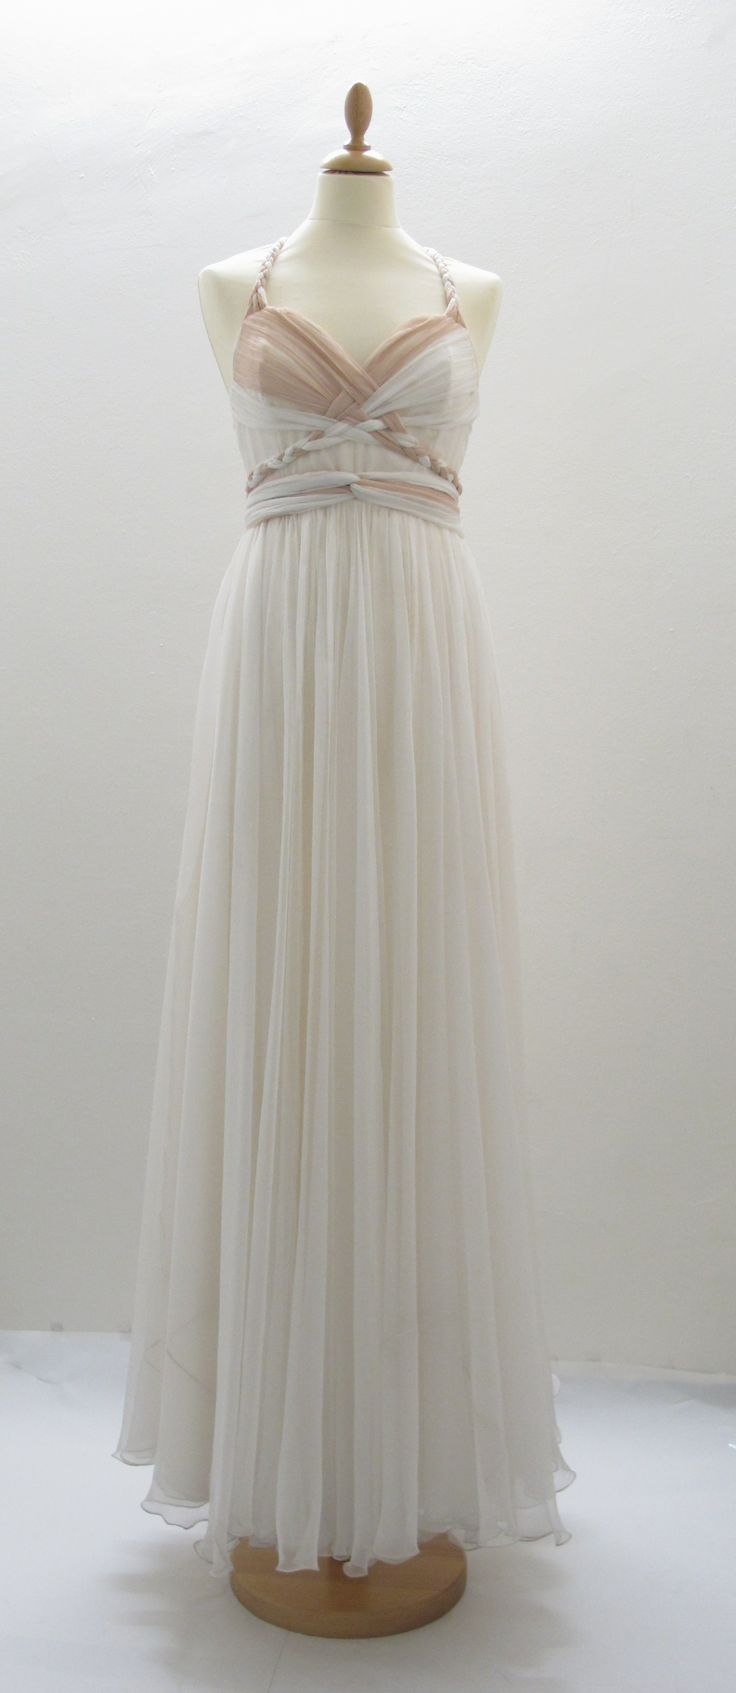 http://www.ceciliemelli.com/wp-content/gallery/kjoler/pariskjolen.jpg Twists in the bodice, falls beautifully. In love with this dress.